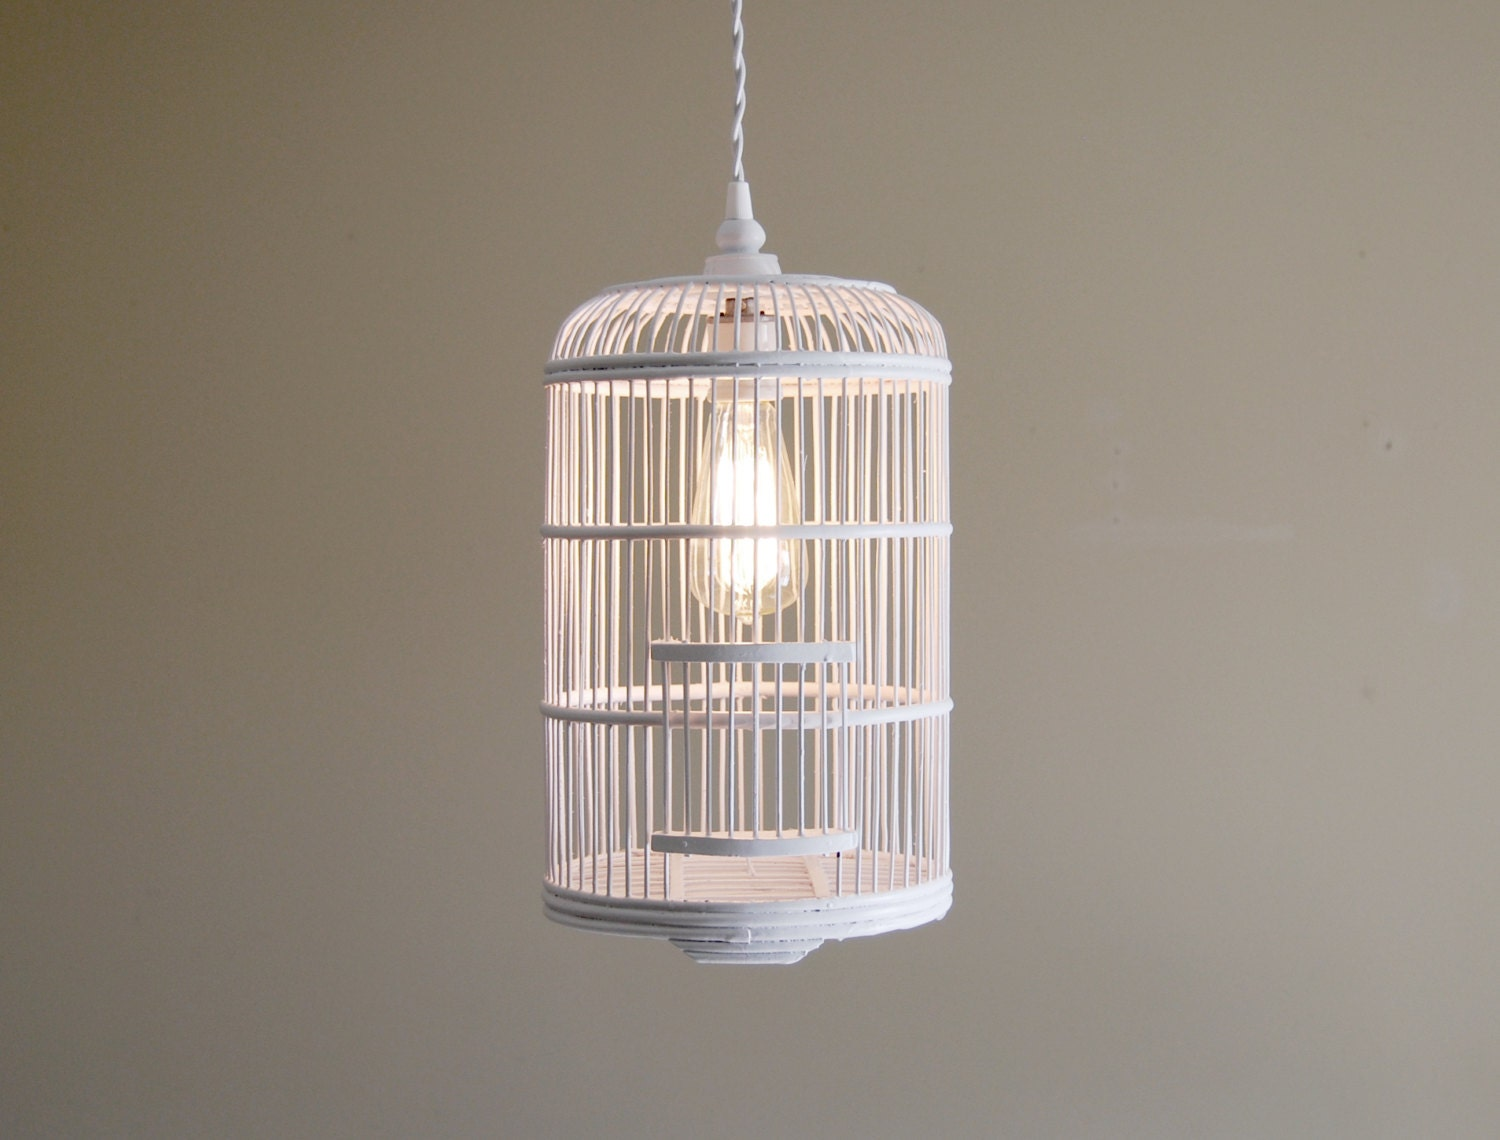 bird cage pendant light fixture w twisted cloth covered cord